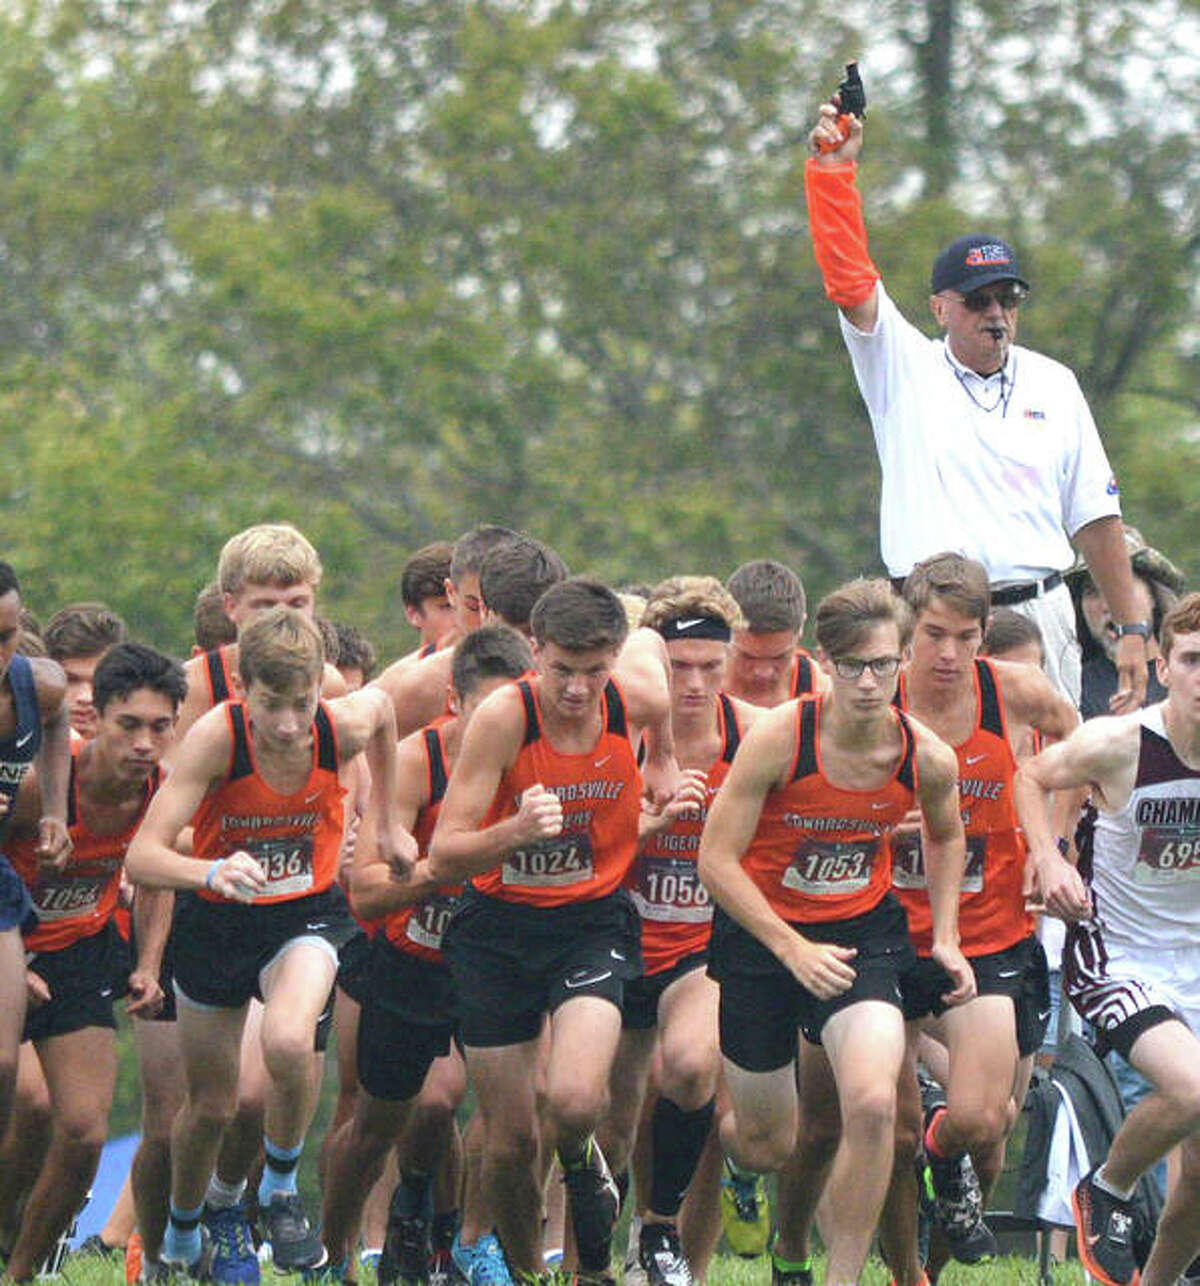 The Edwardsville boys cross country team gets off to a fast start at the Edwardsville Invitational at the SIUE course in 2019.